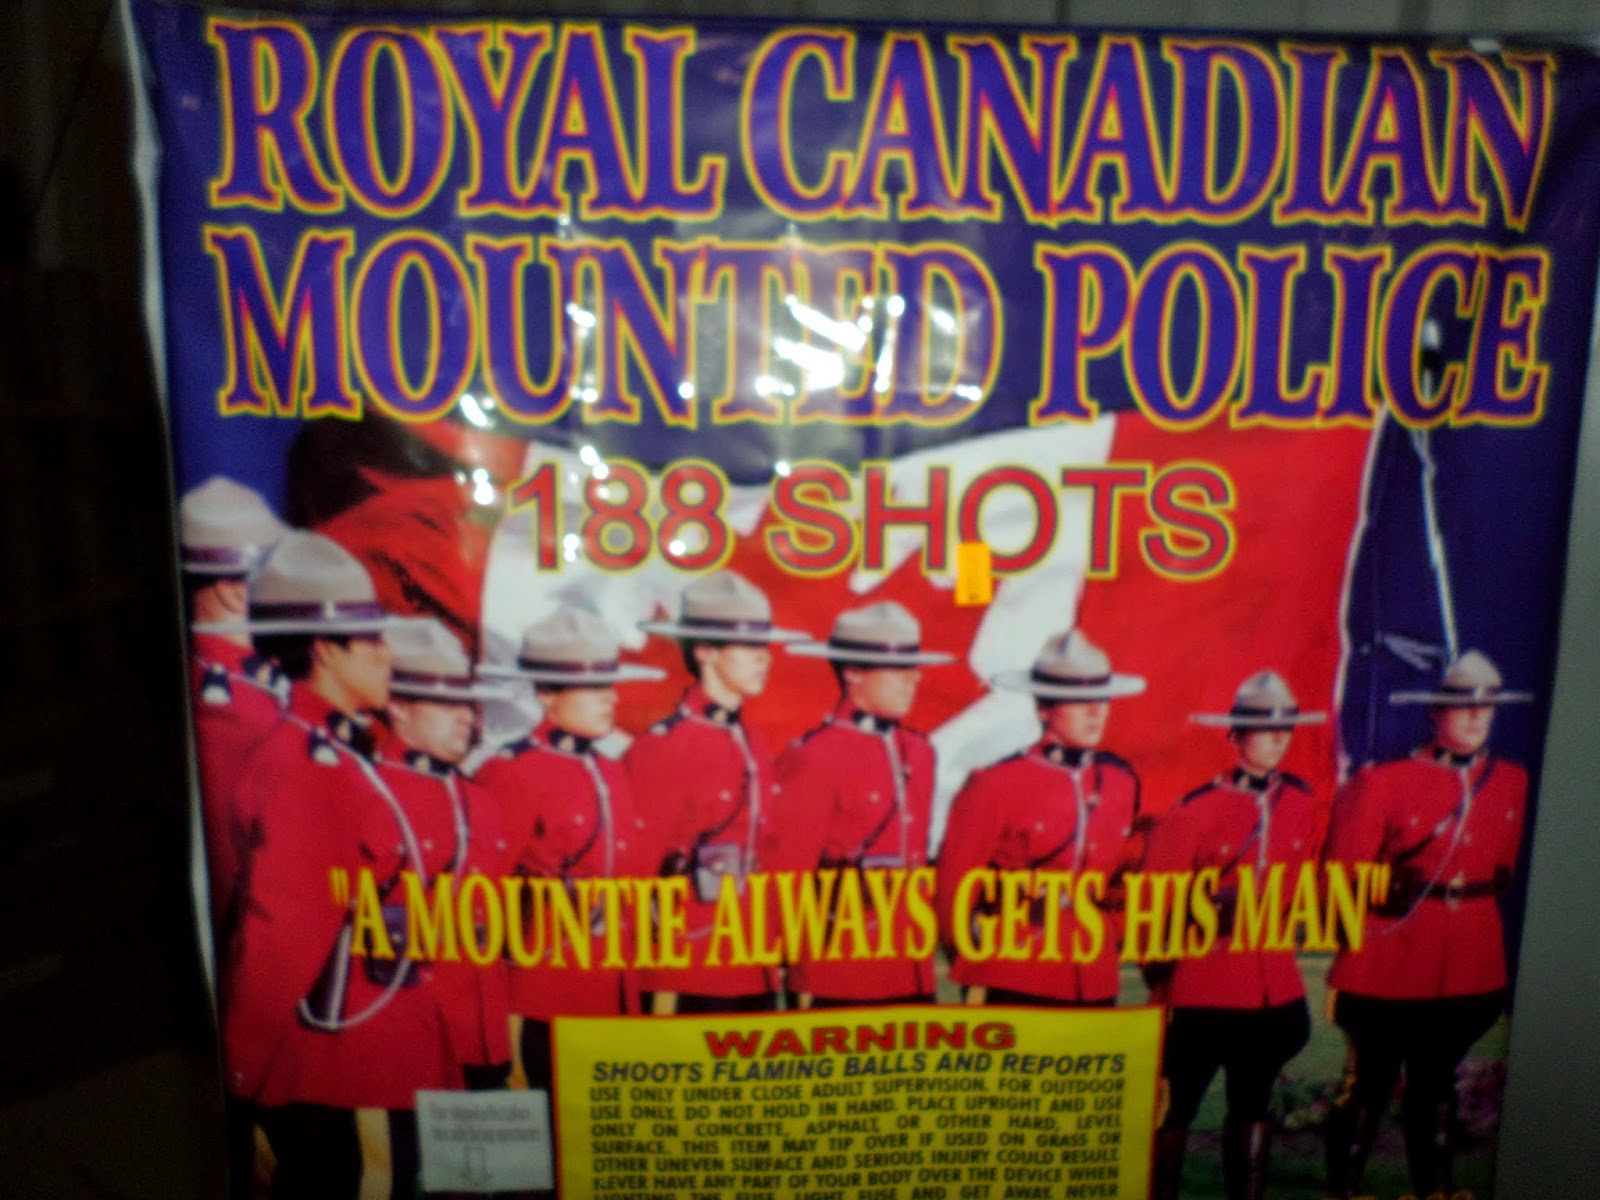 ROYAL CANADIAN MOUNTED POLICE (500 gram, grand finale) Image